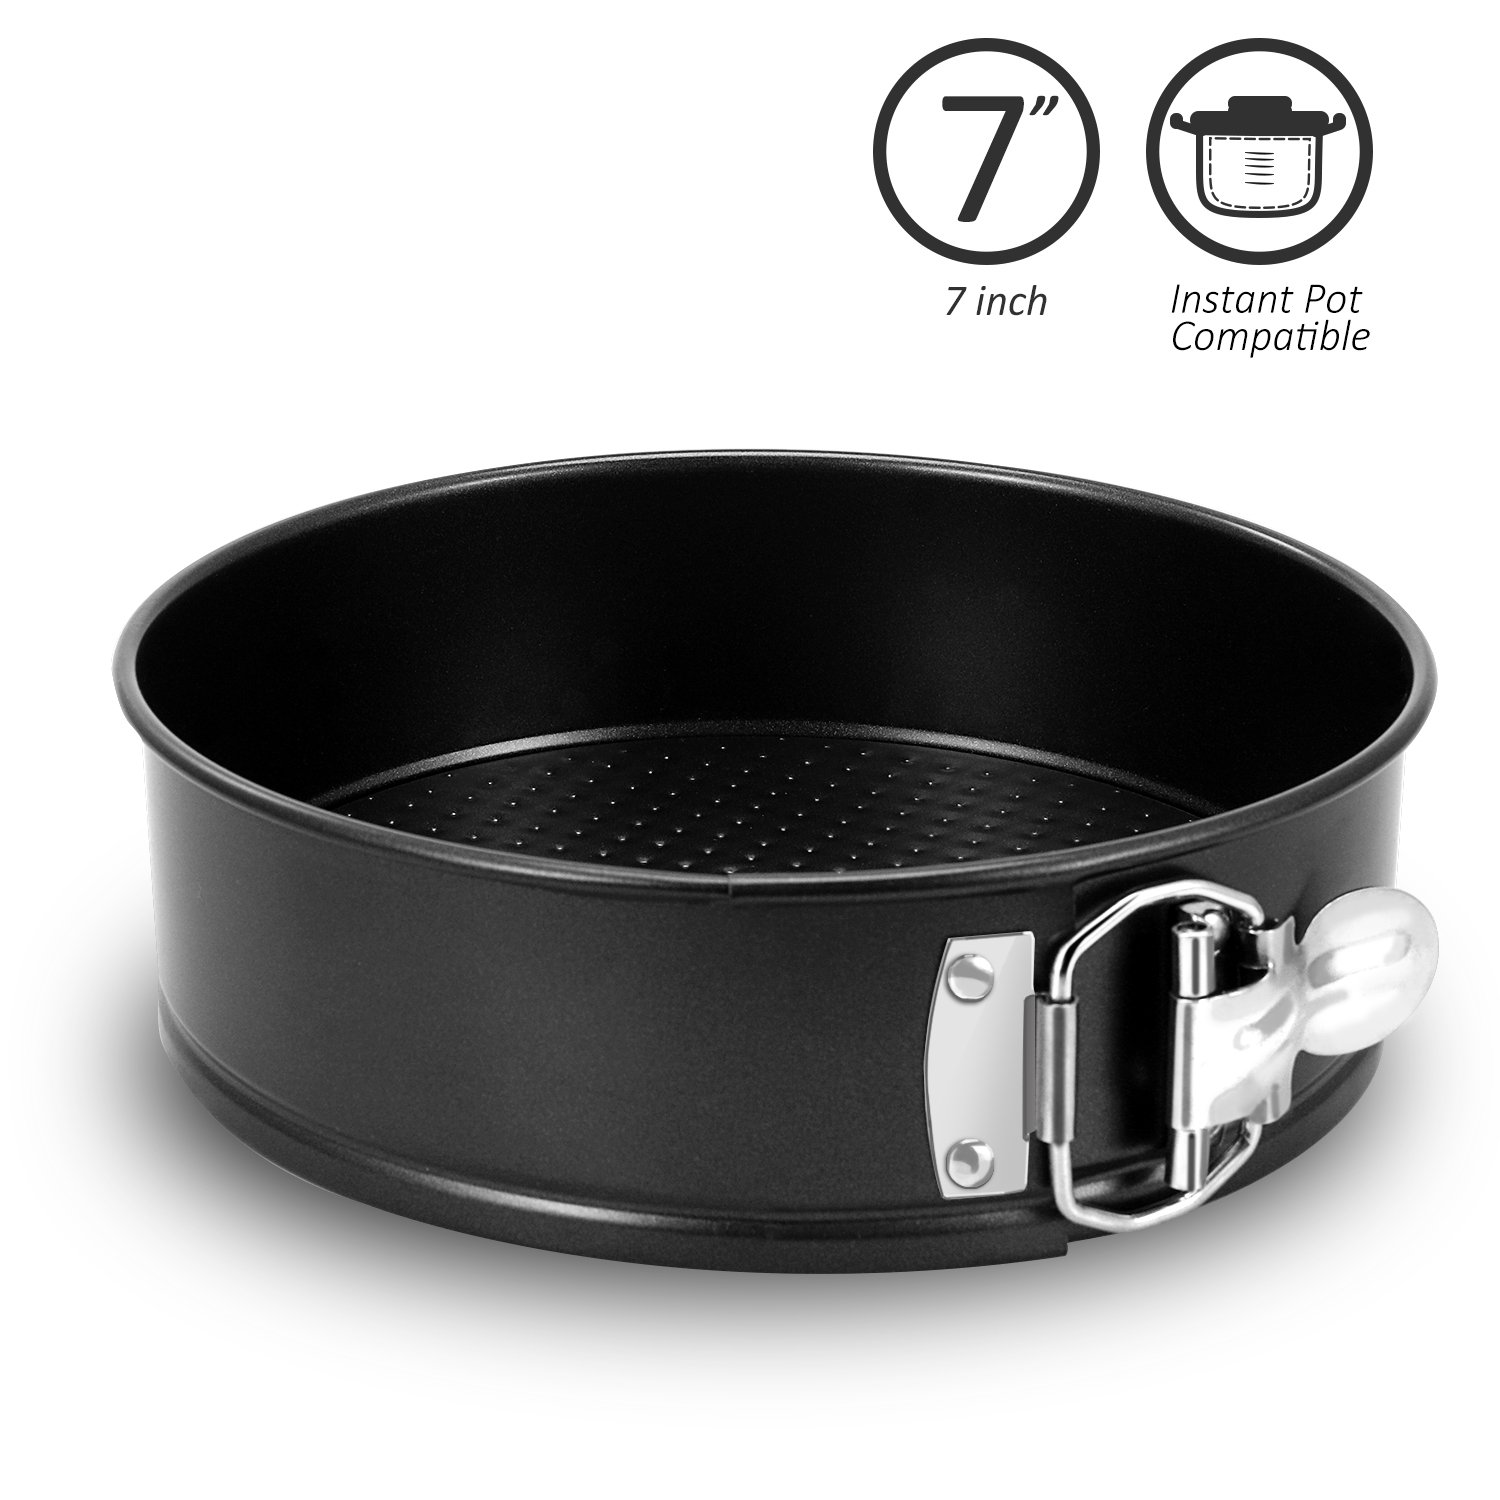 Fayy 7 Inch Springform Pan Compatible for Instant Pot Accessories and Pressure Cooker 6, 8 Quart